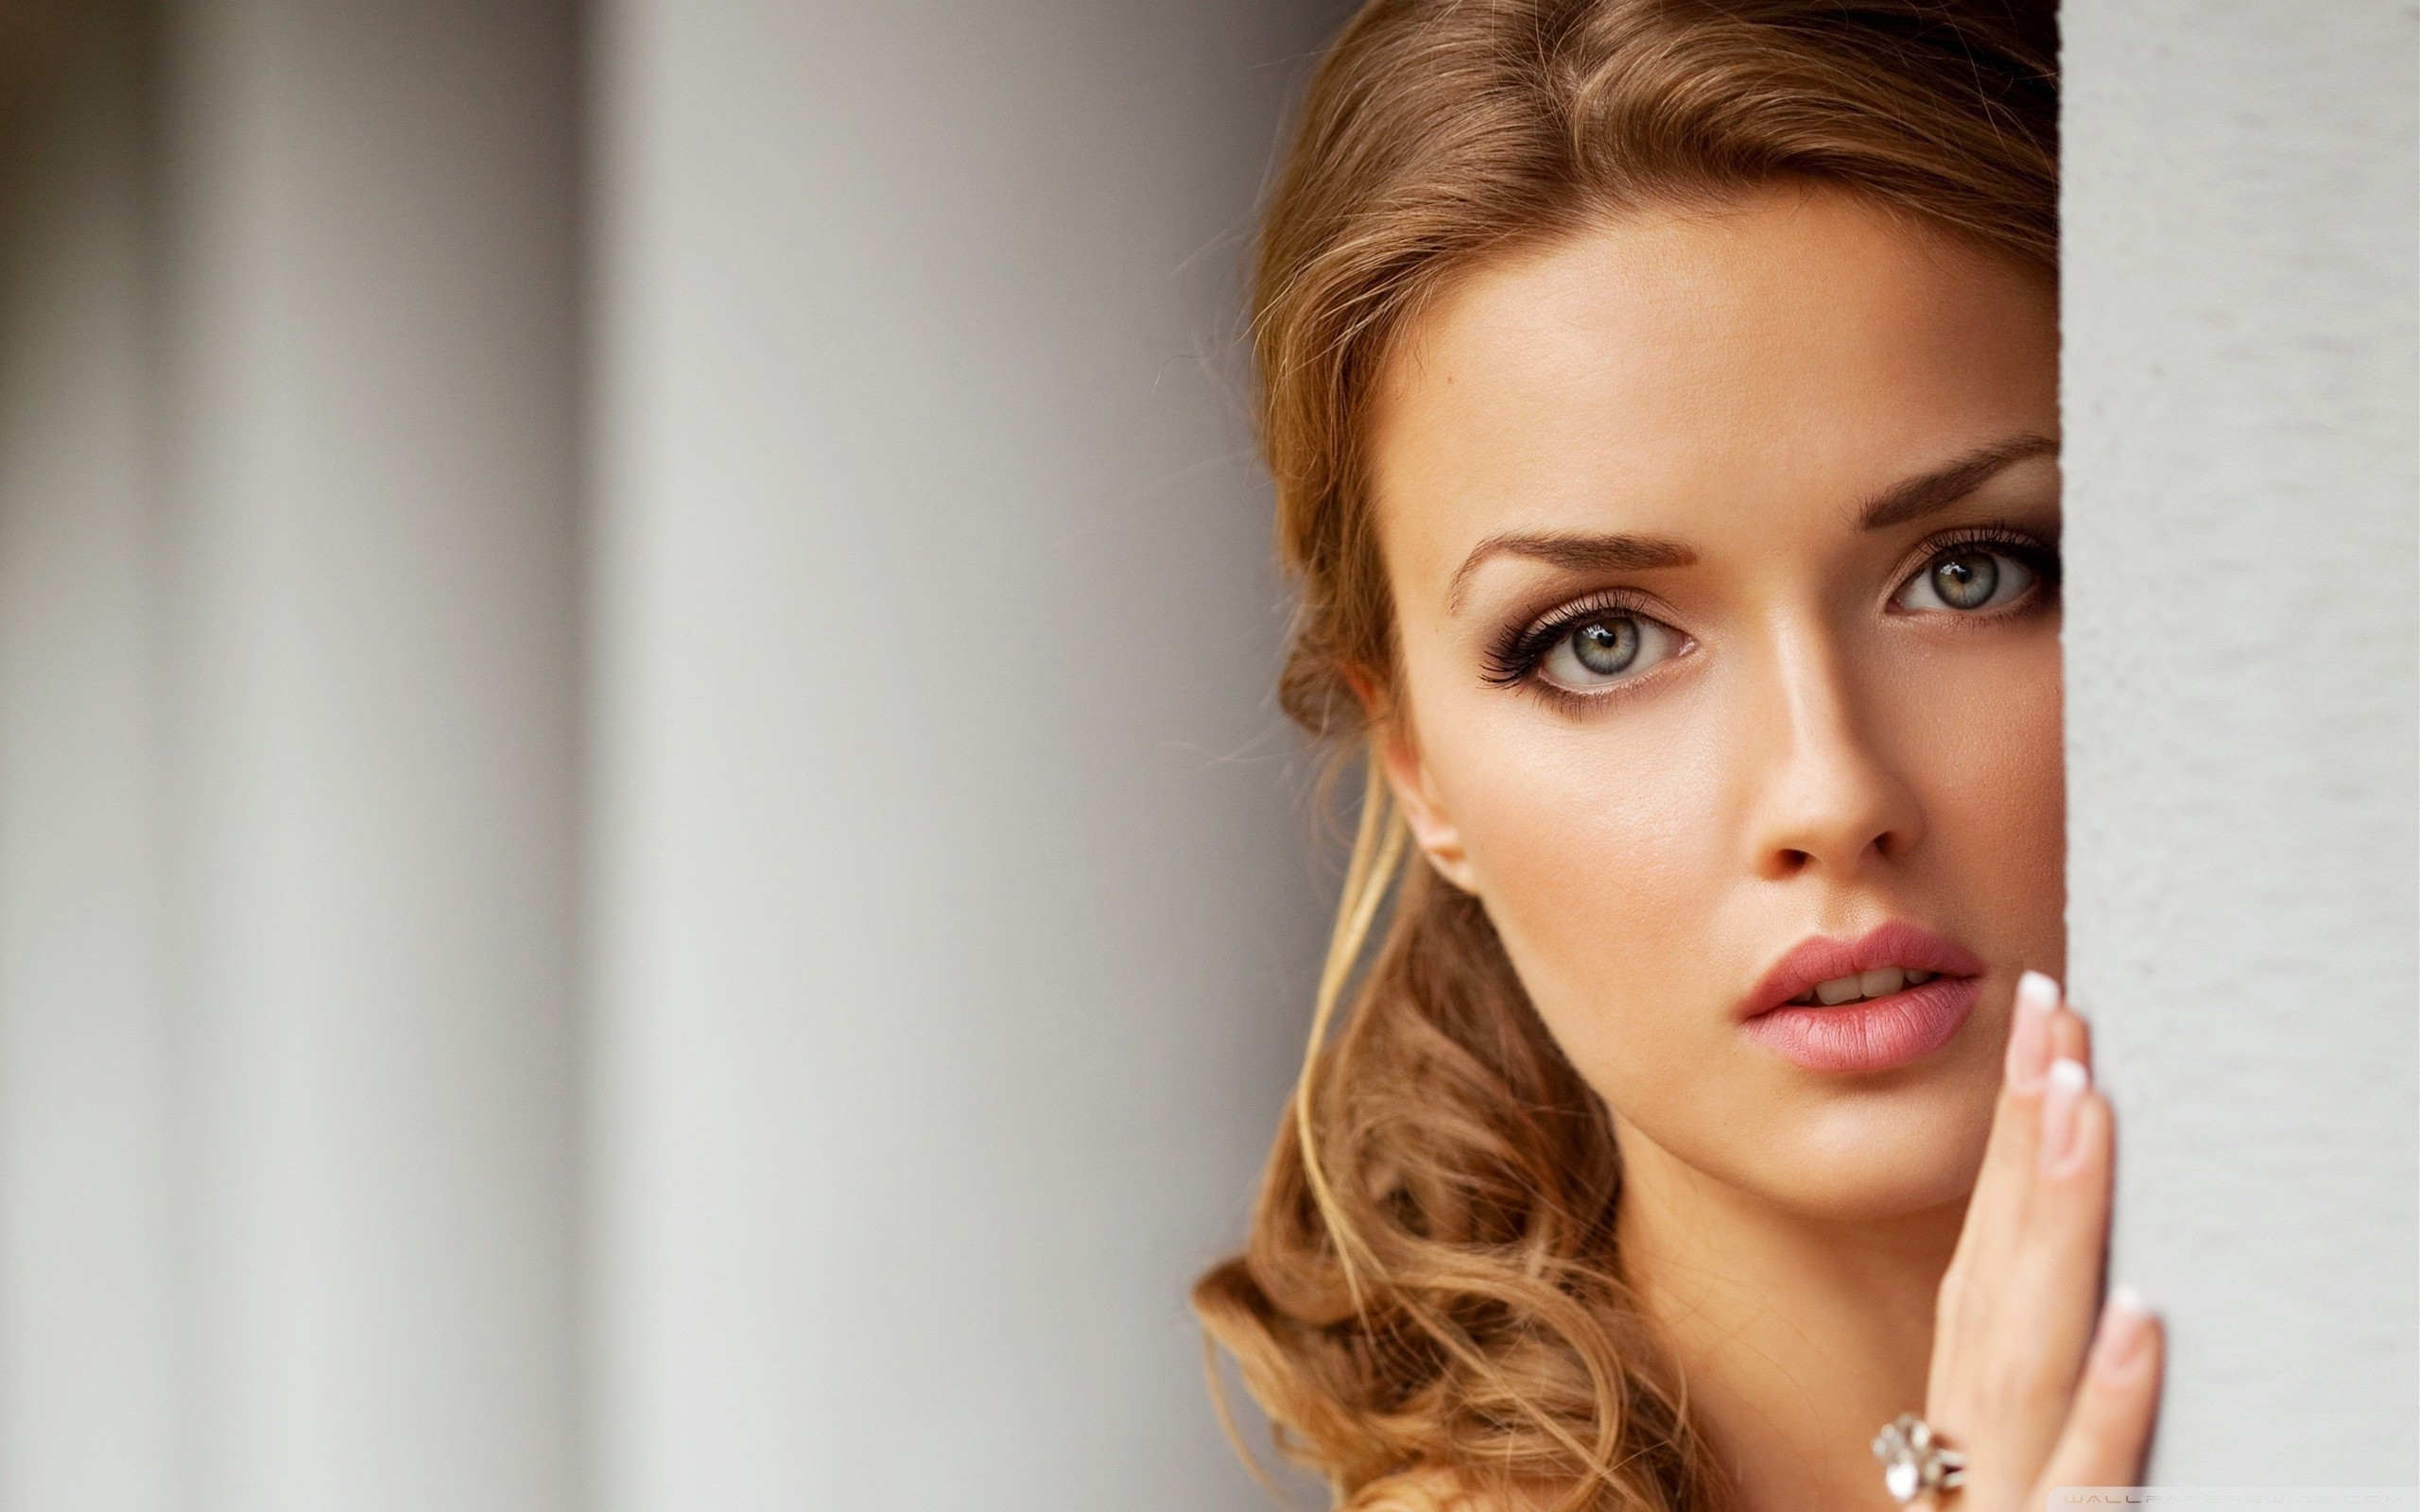 Most Beautiful Women Hd Wallpaper 64 Images